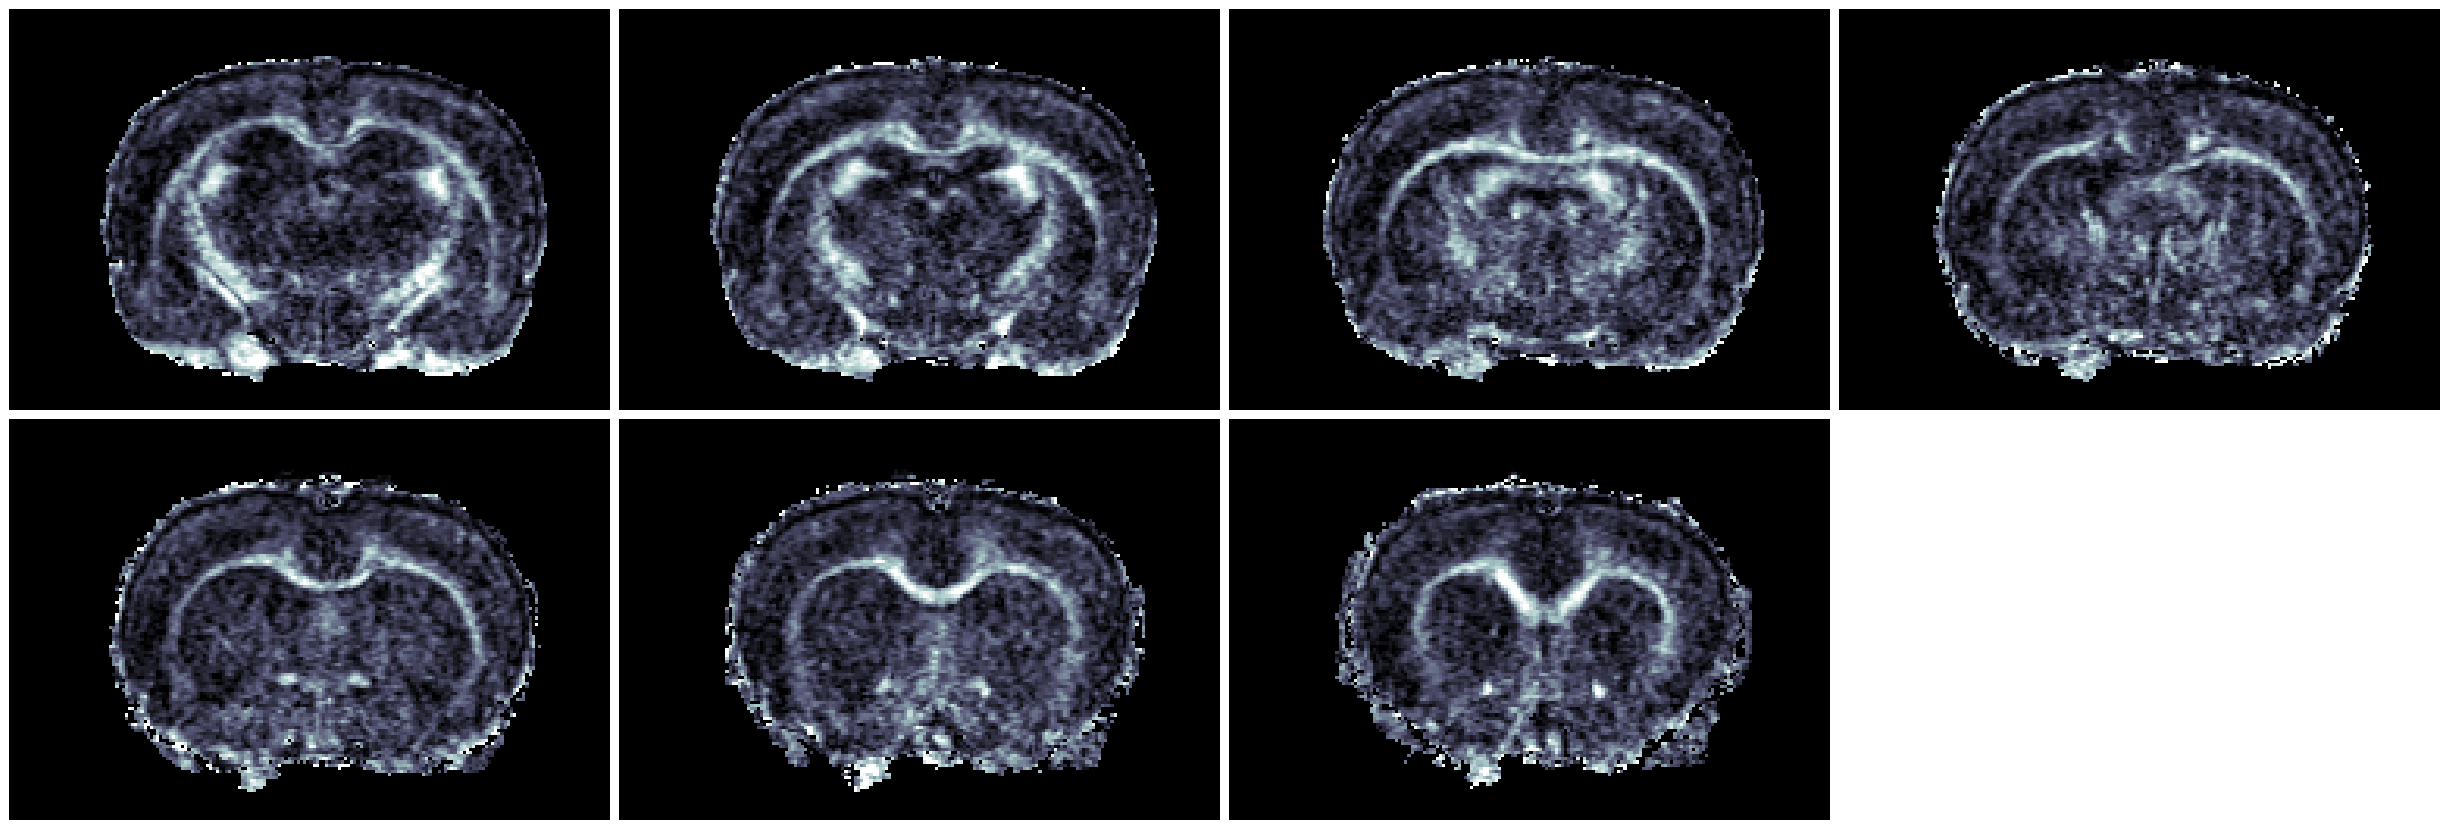 4-segment spin-echo diffusion tensor imaging of a lesion induced by unilateral injection of lysophospatidylcholine (LPC) into the corpus callosum